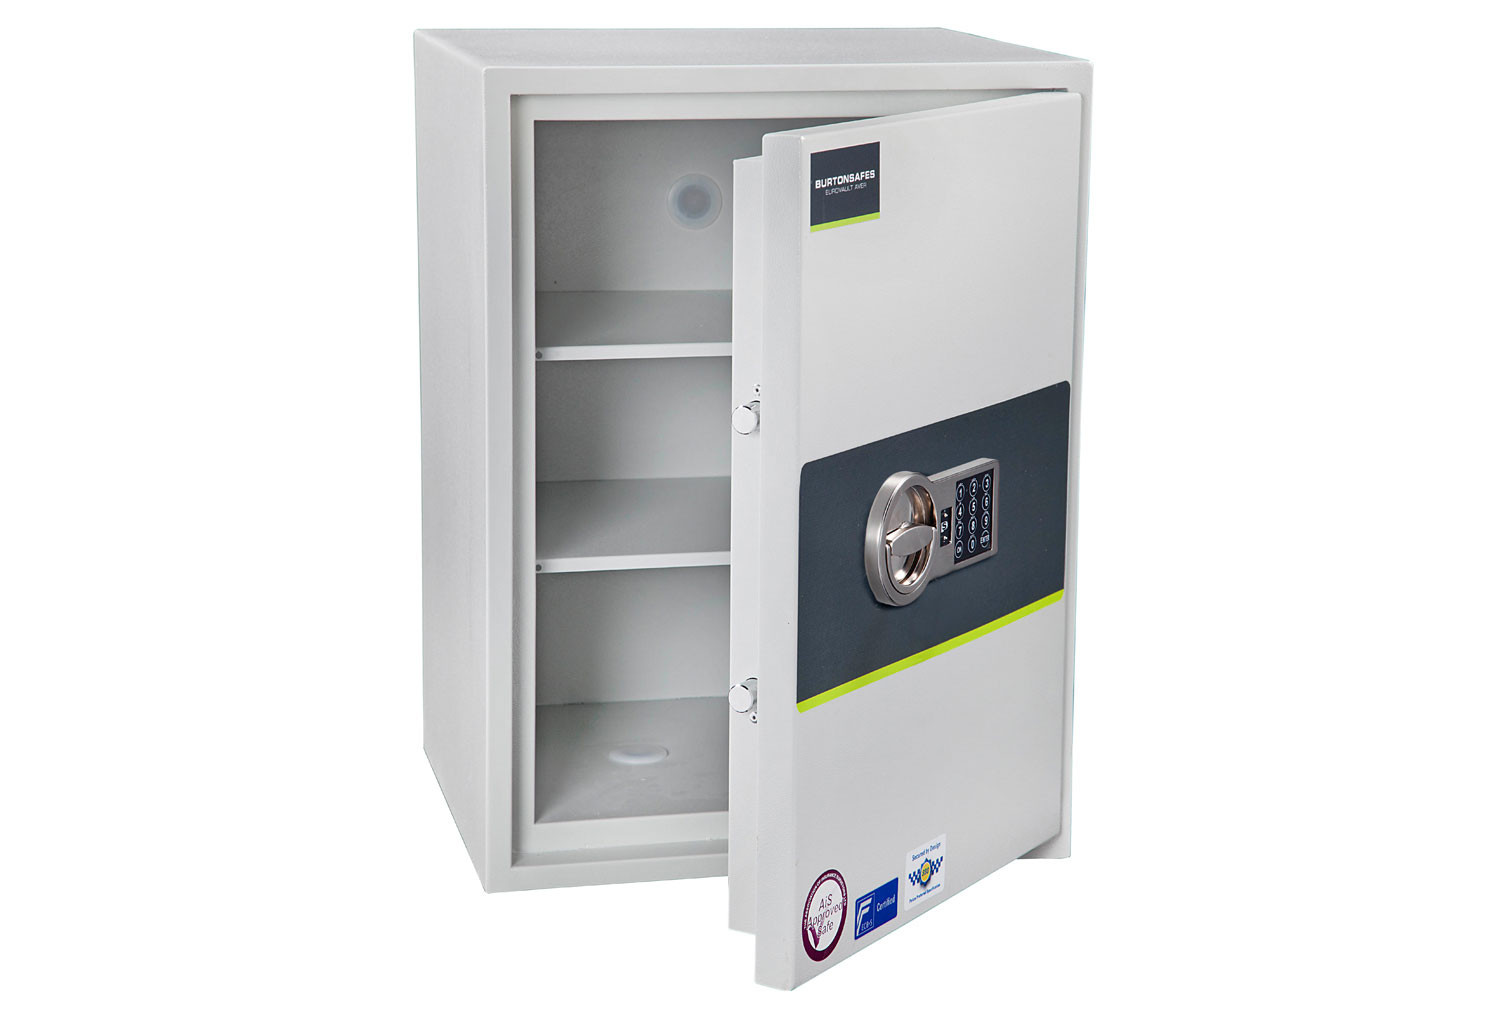 Burton Eurovault Aver S2 Size 4 Safe With Electric Lock (56ltrs)